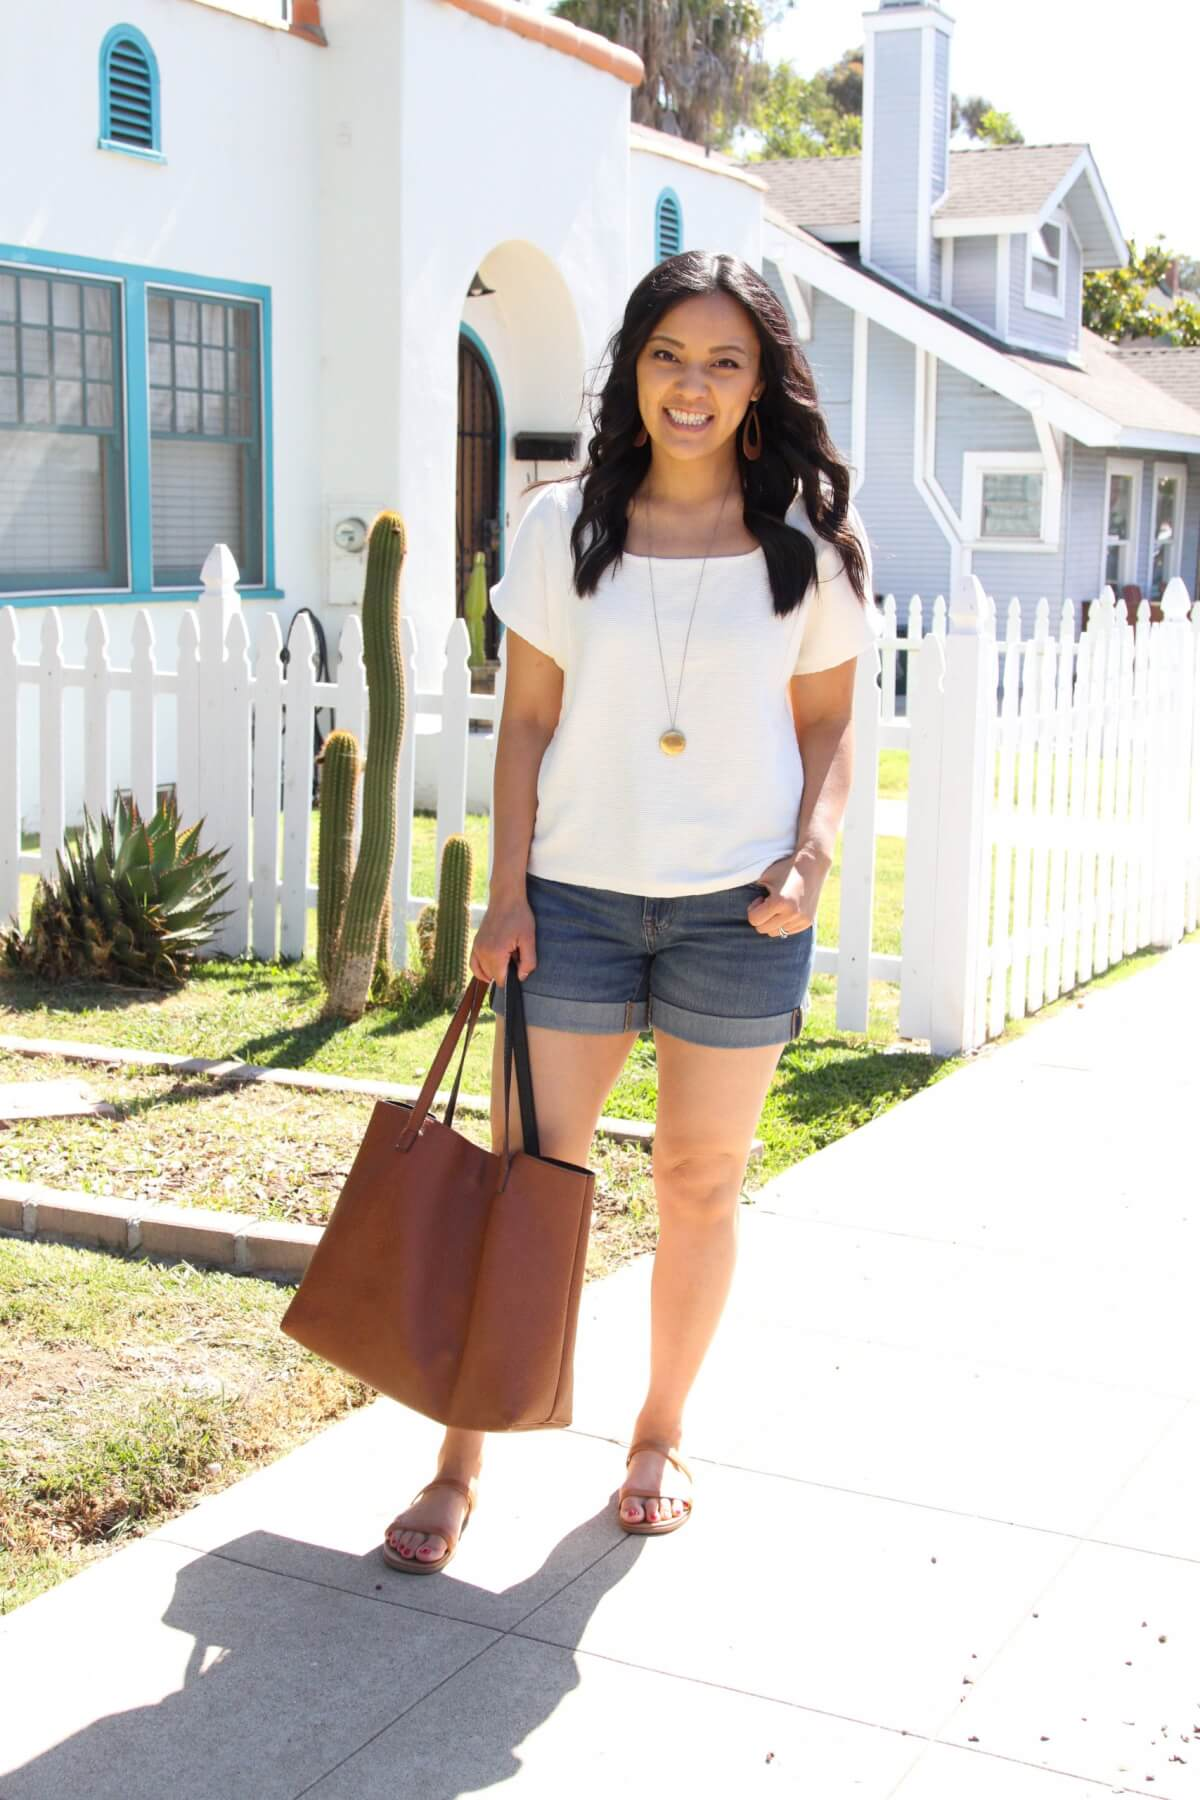 Nicer Casual Summer Outfit: cream square neck top + denim shorts + tan earrings + pendant necklace + tan strappy sandals + tan tote